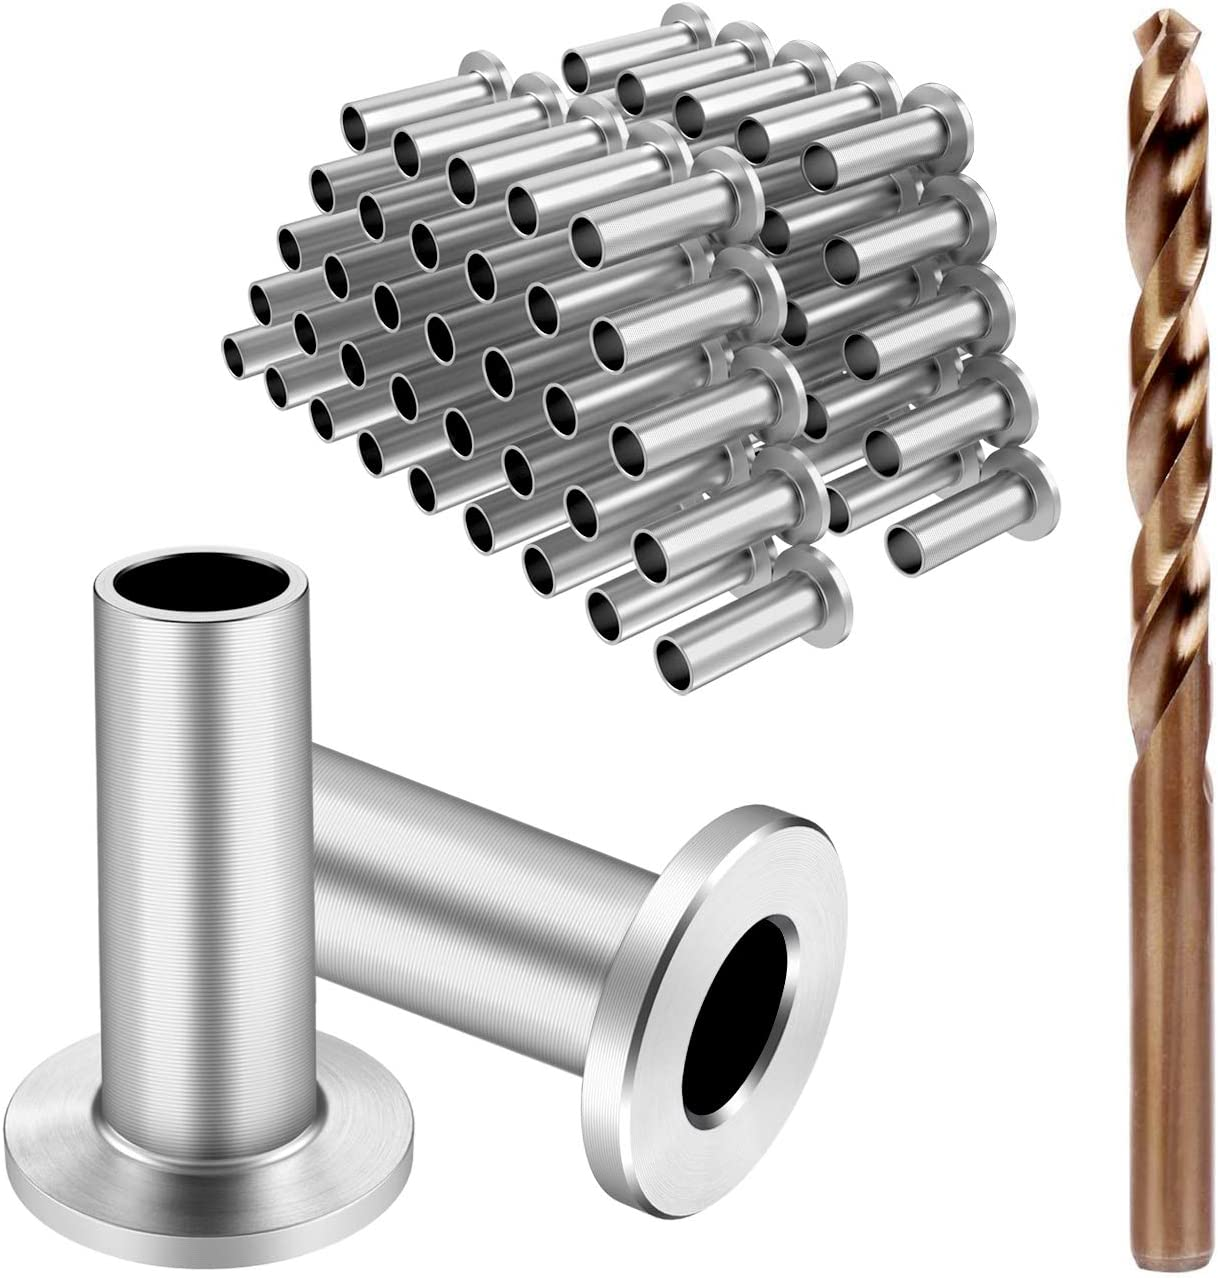 GraceMake Stainless Steel Protector Sleeves for 1//8 Wire Rope Cable Railing System Wood Post,DIY Balustrade Hardware T316 Marine Grade,Come with Matching Drill Bit,20 Pack